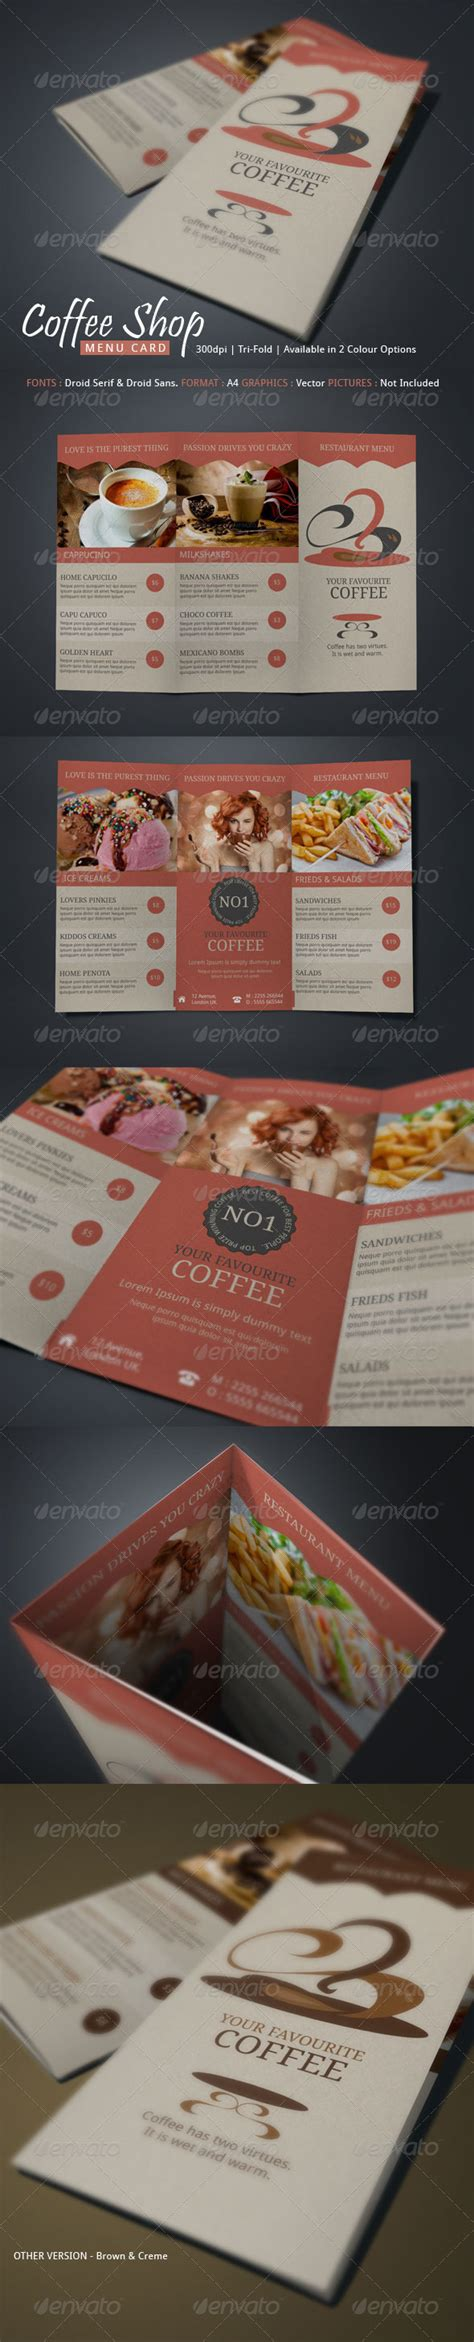 sandwich shop menu template sandwich shop menu templates 187 tinkytyler org stock